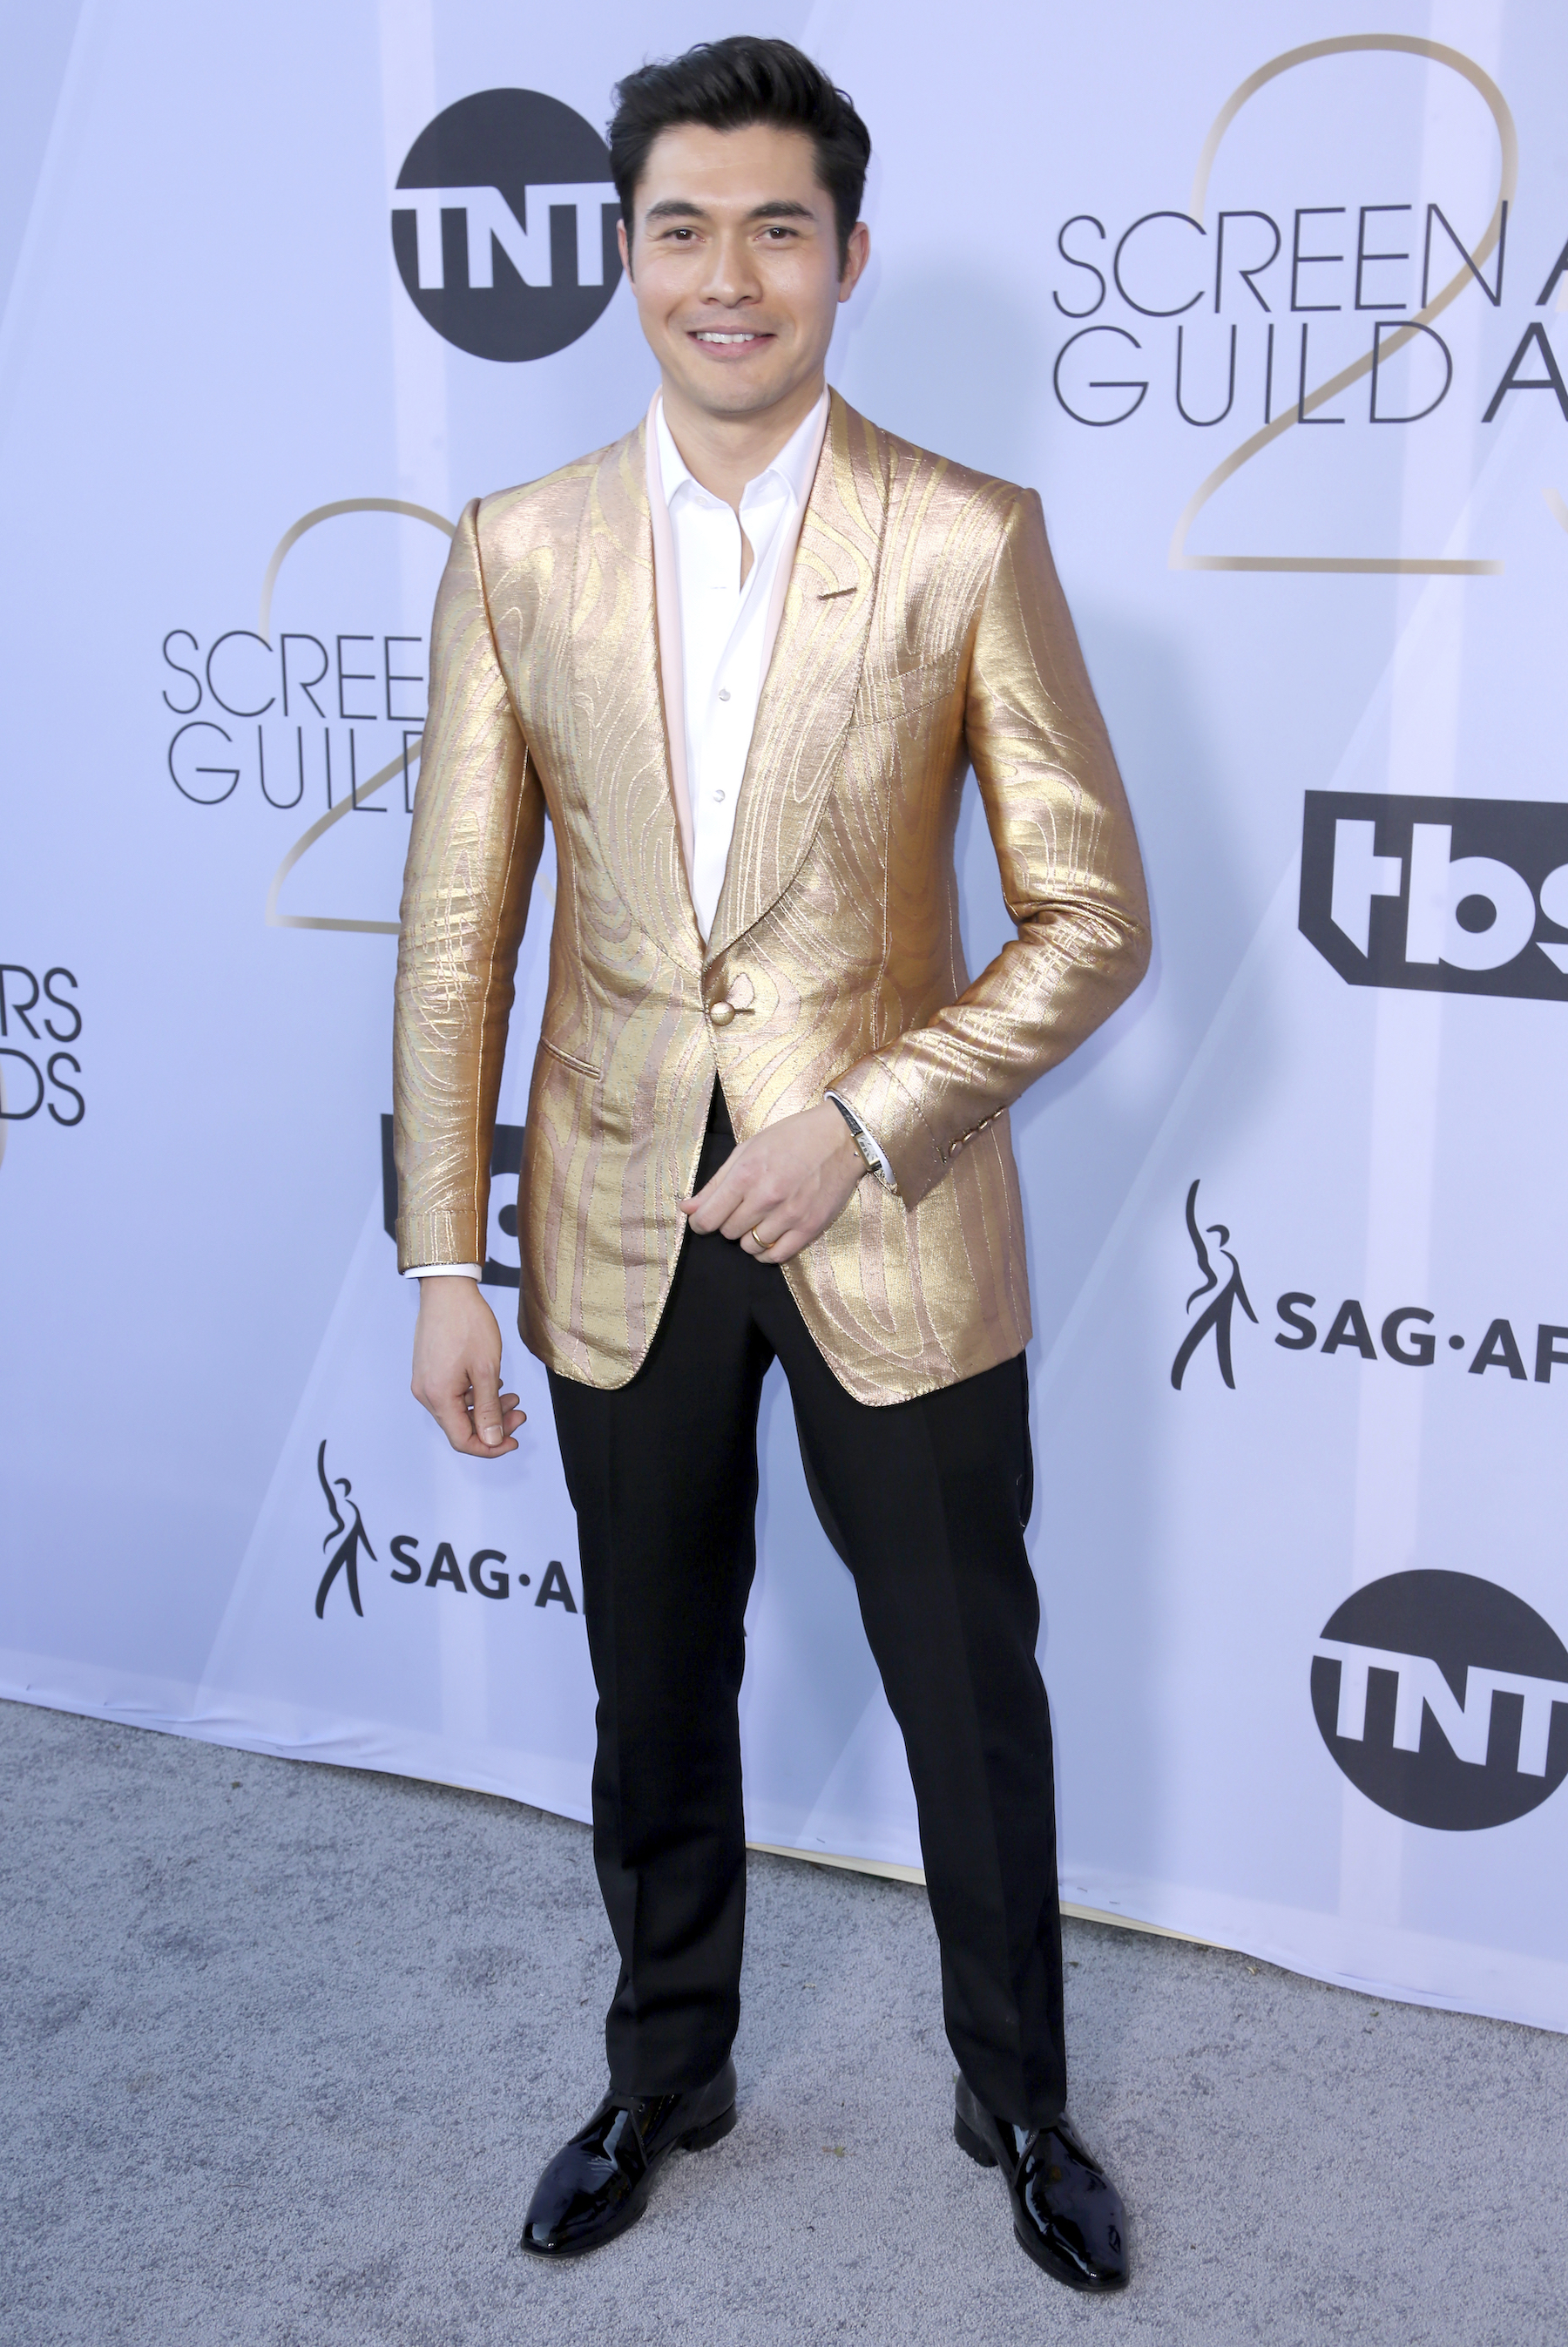 <div class='meta'><div class='origin-logo' data-origin='AP'></div><span class='caption-text' data-credit='Willy Sanjuan/Invision/AP'>Henry Golding arrives at the 25th annual Screen Actors Guild Awards at the Shrine Auditorium & Expo Hall on Sunday, Jan. 27, 2019, in Los Angeles.</span></div>